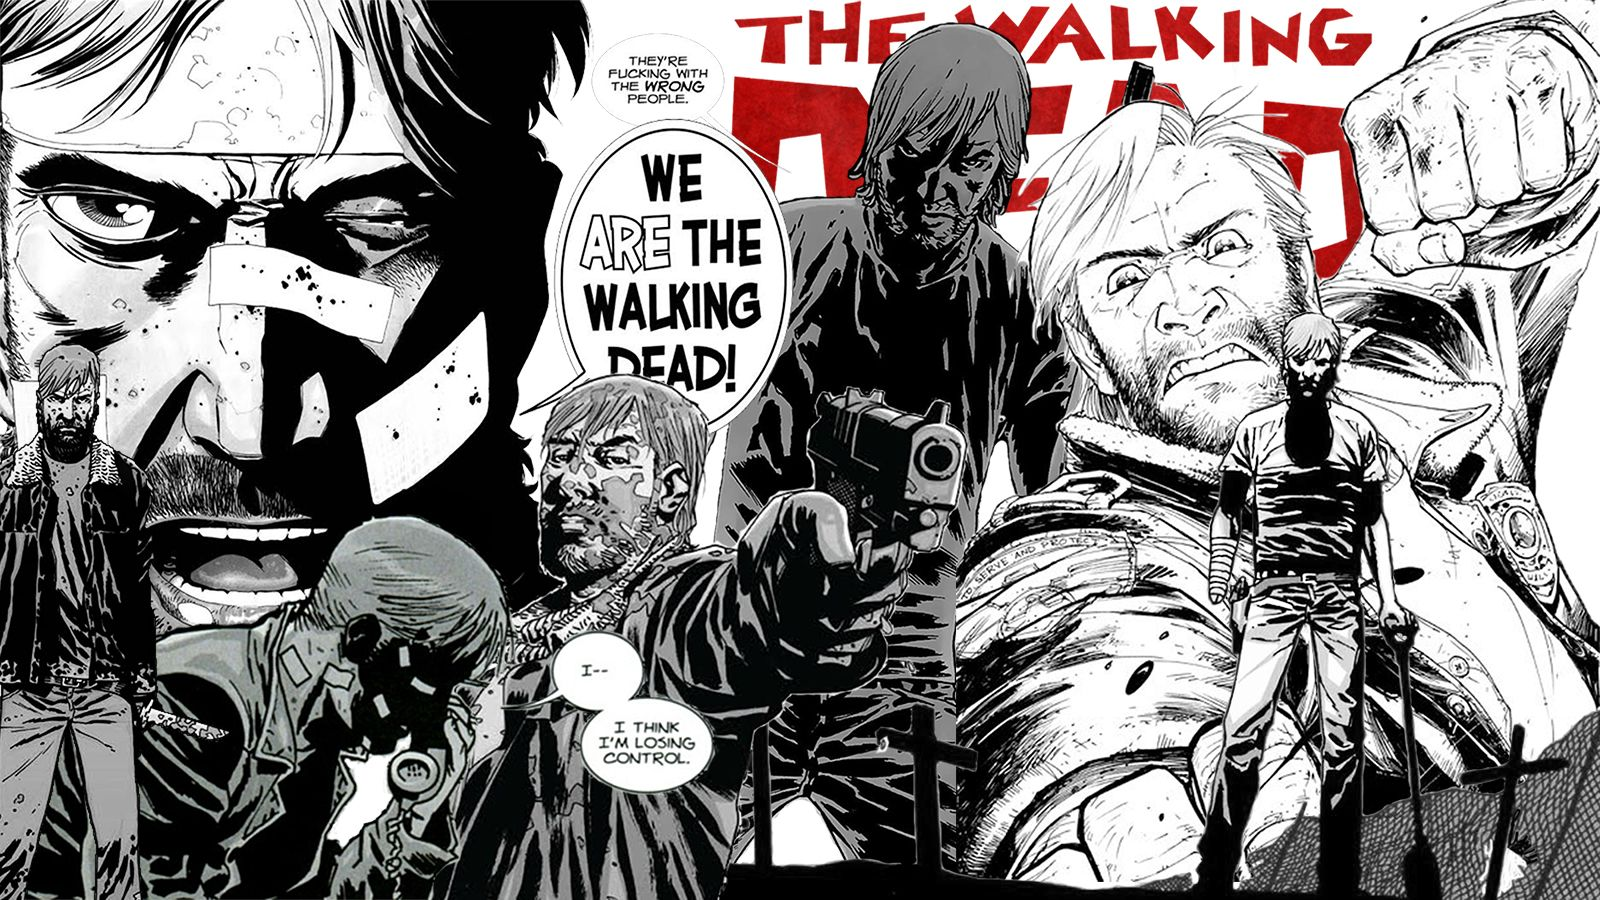 The Walking Dead Issue 140 Pdf